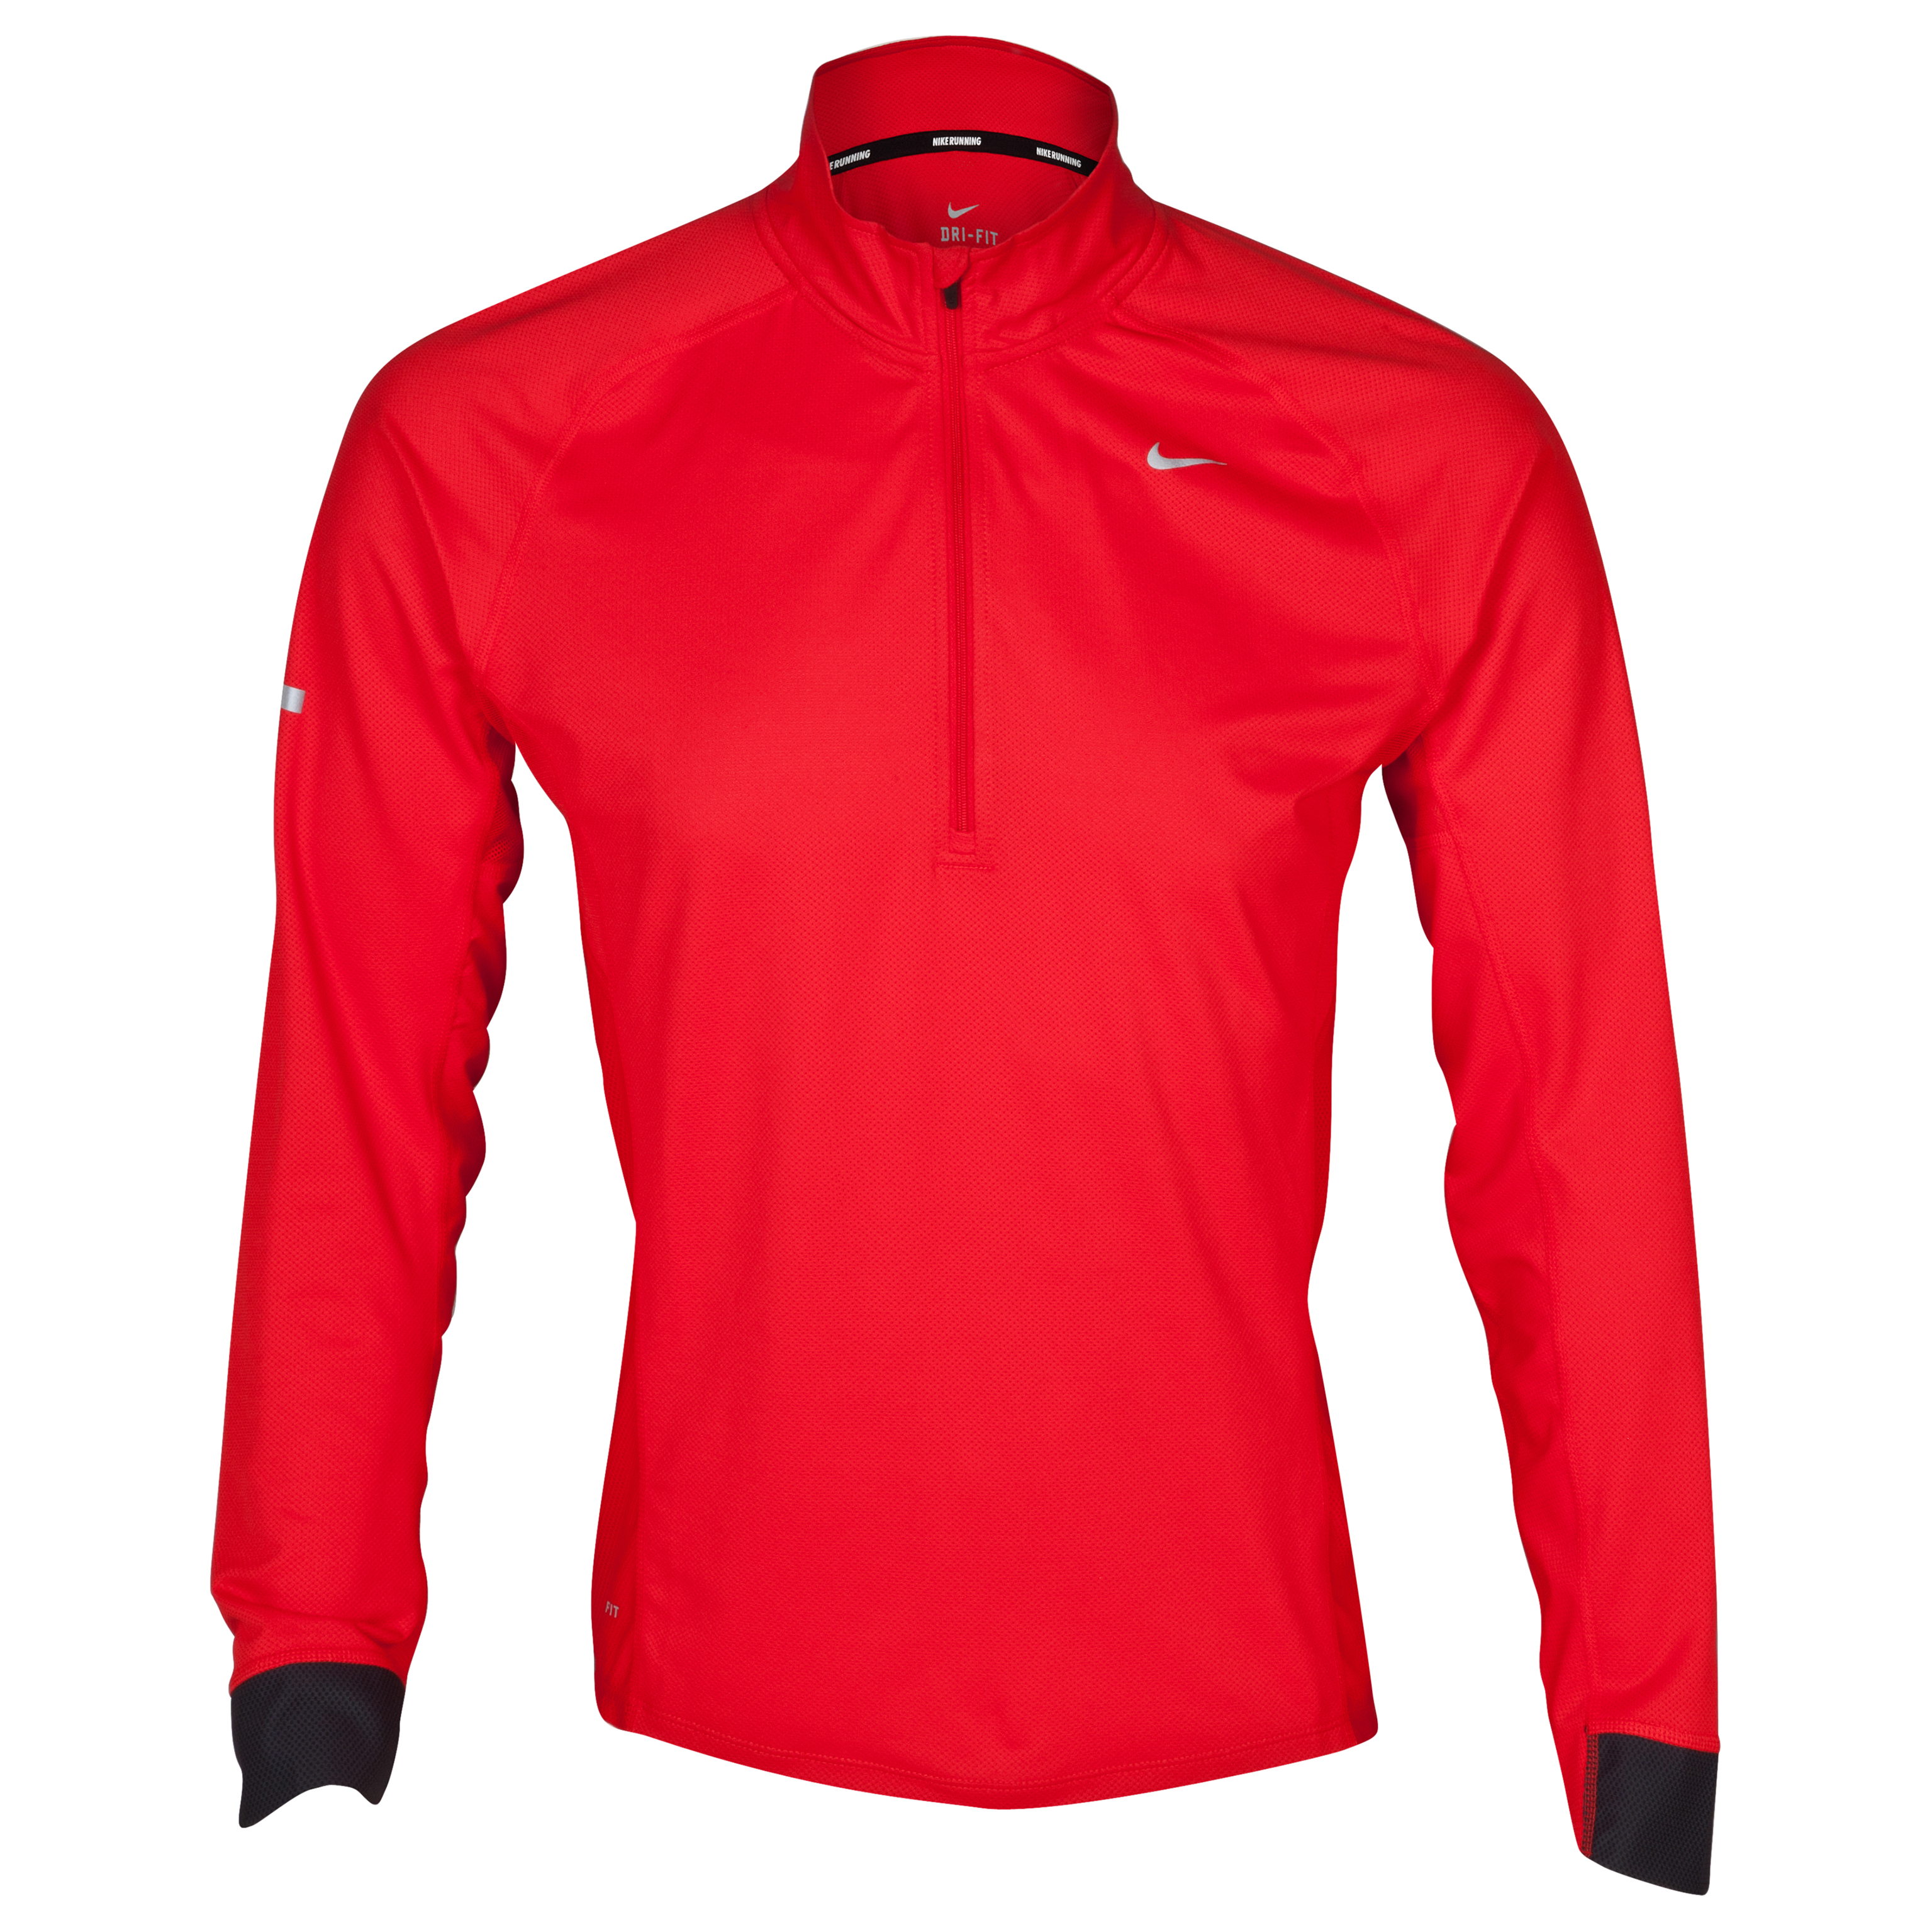 Nike Sphere LS 1/2 Zip Top - Pimento Red/Anthracite